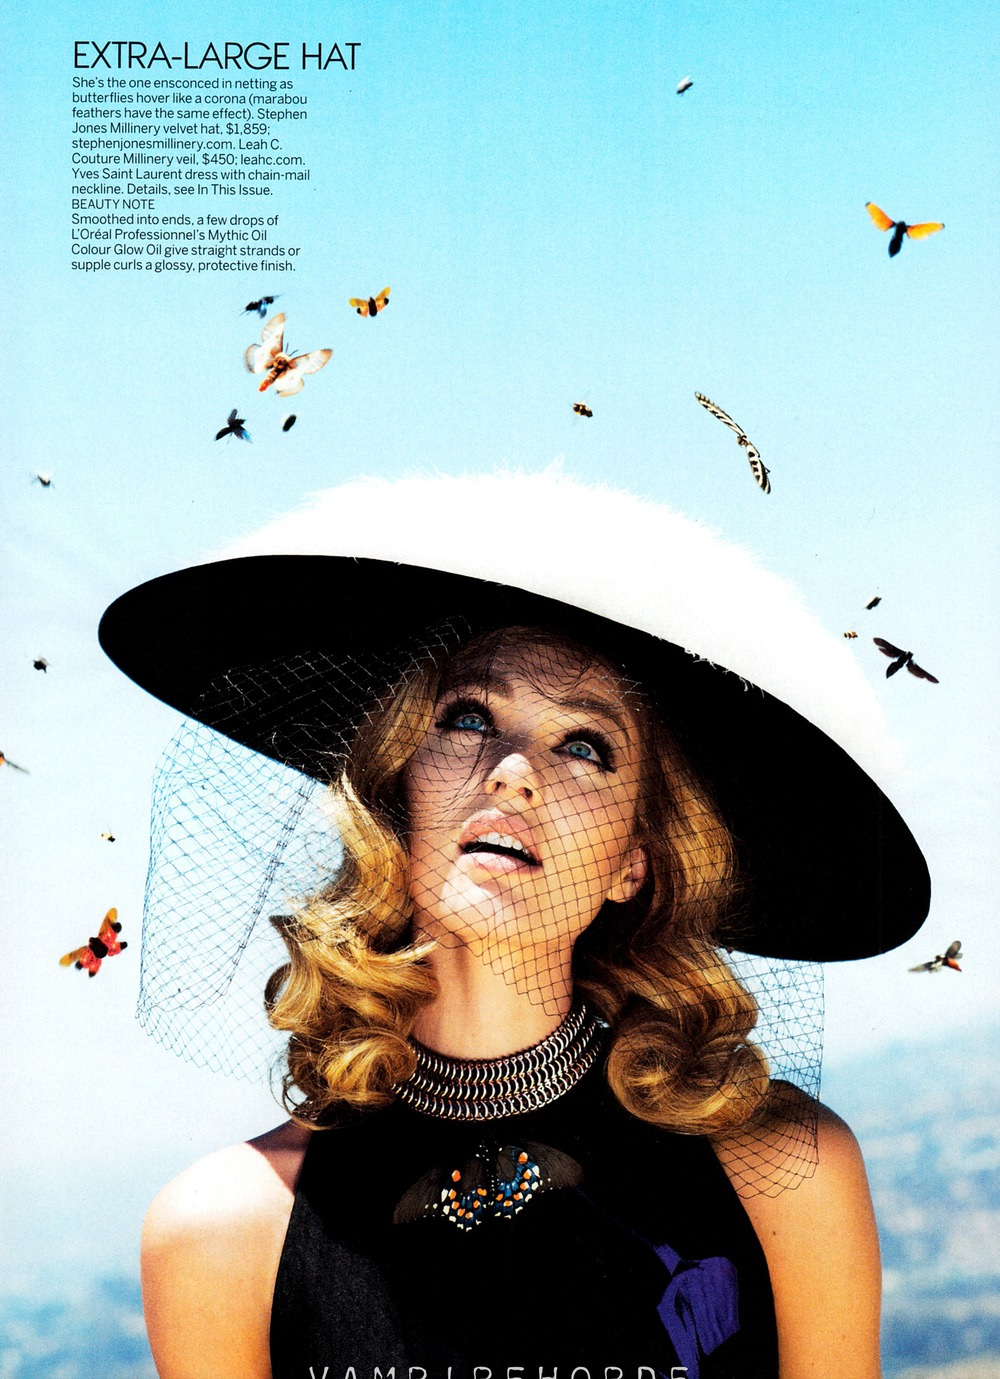 fashion_scans_remastered-candice_swanepoel-vogue_usa-october_2012-scanned_by_vampirehorde-hq-4.jpg